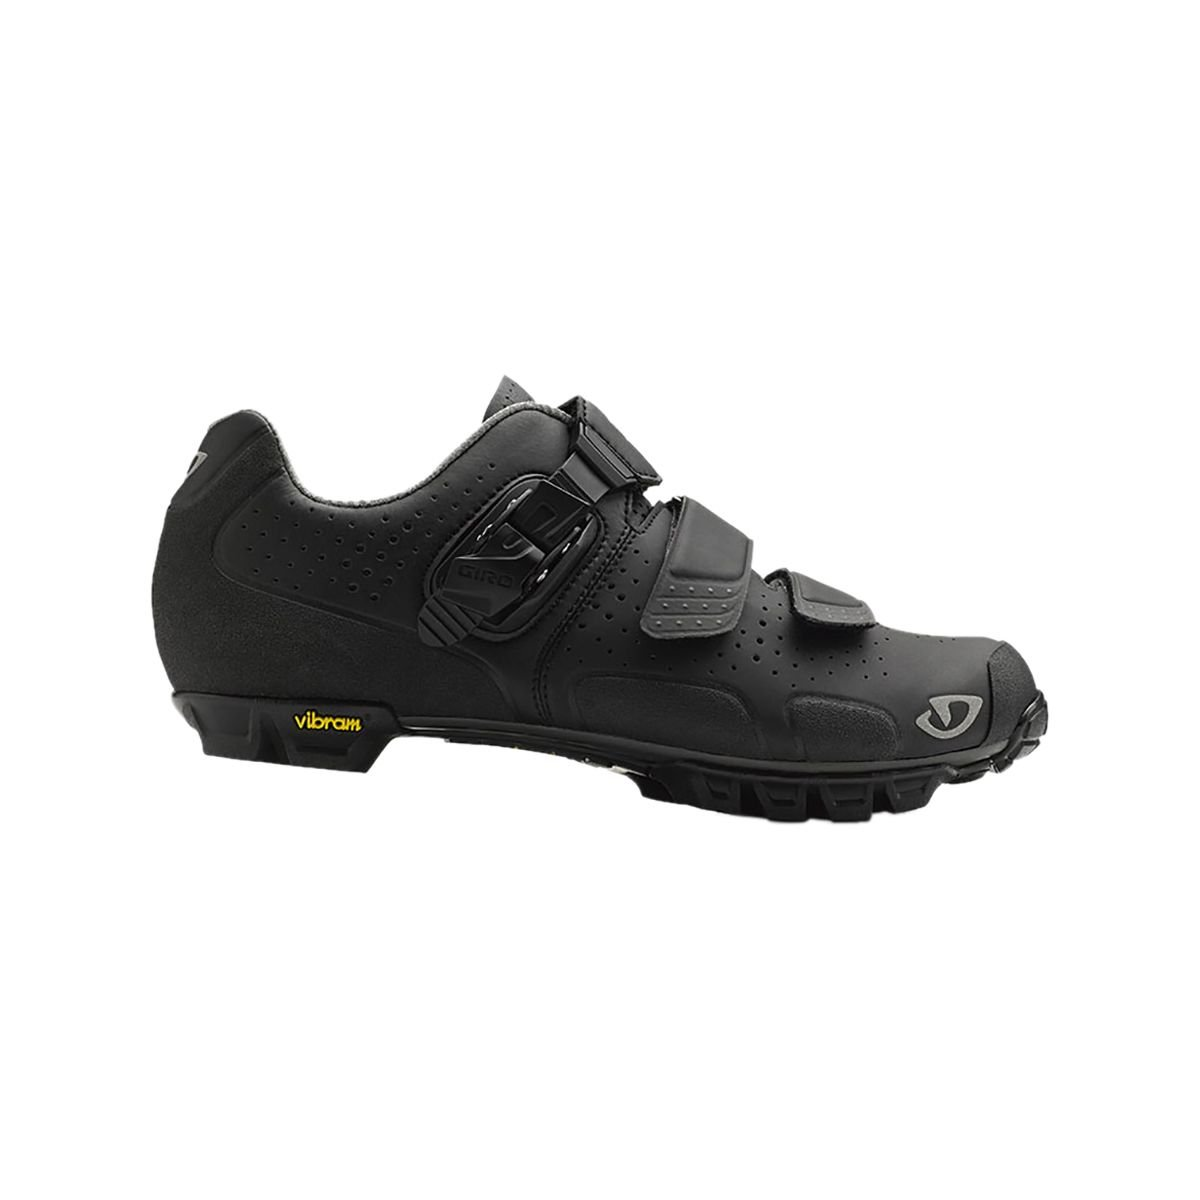 Giro 2016 Women's Sica VR70 Mountain Bike Cycling Shoes (Matte Black - 36)